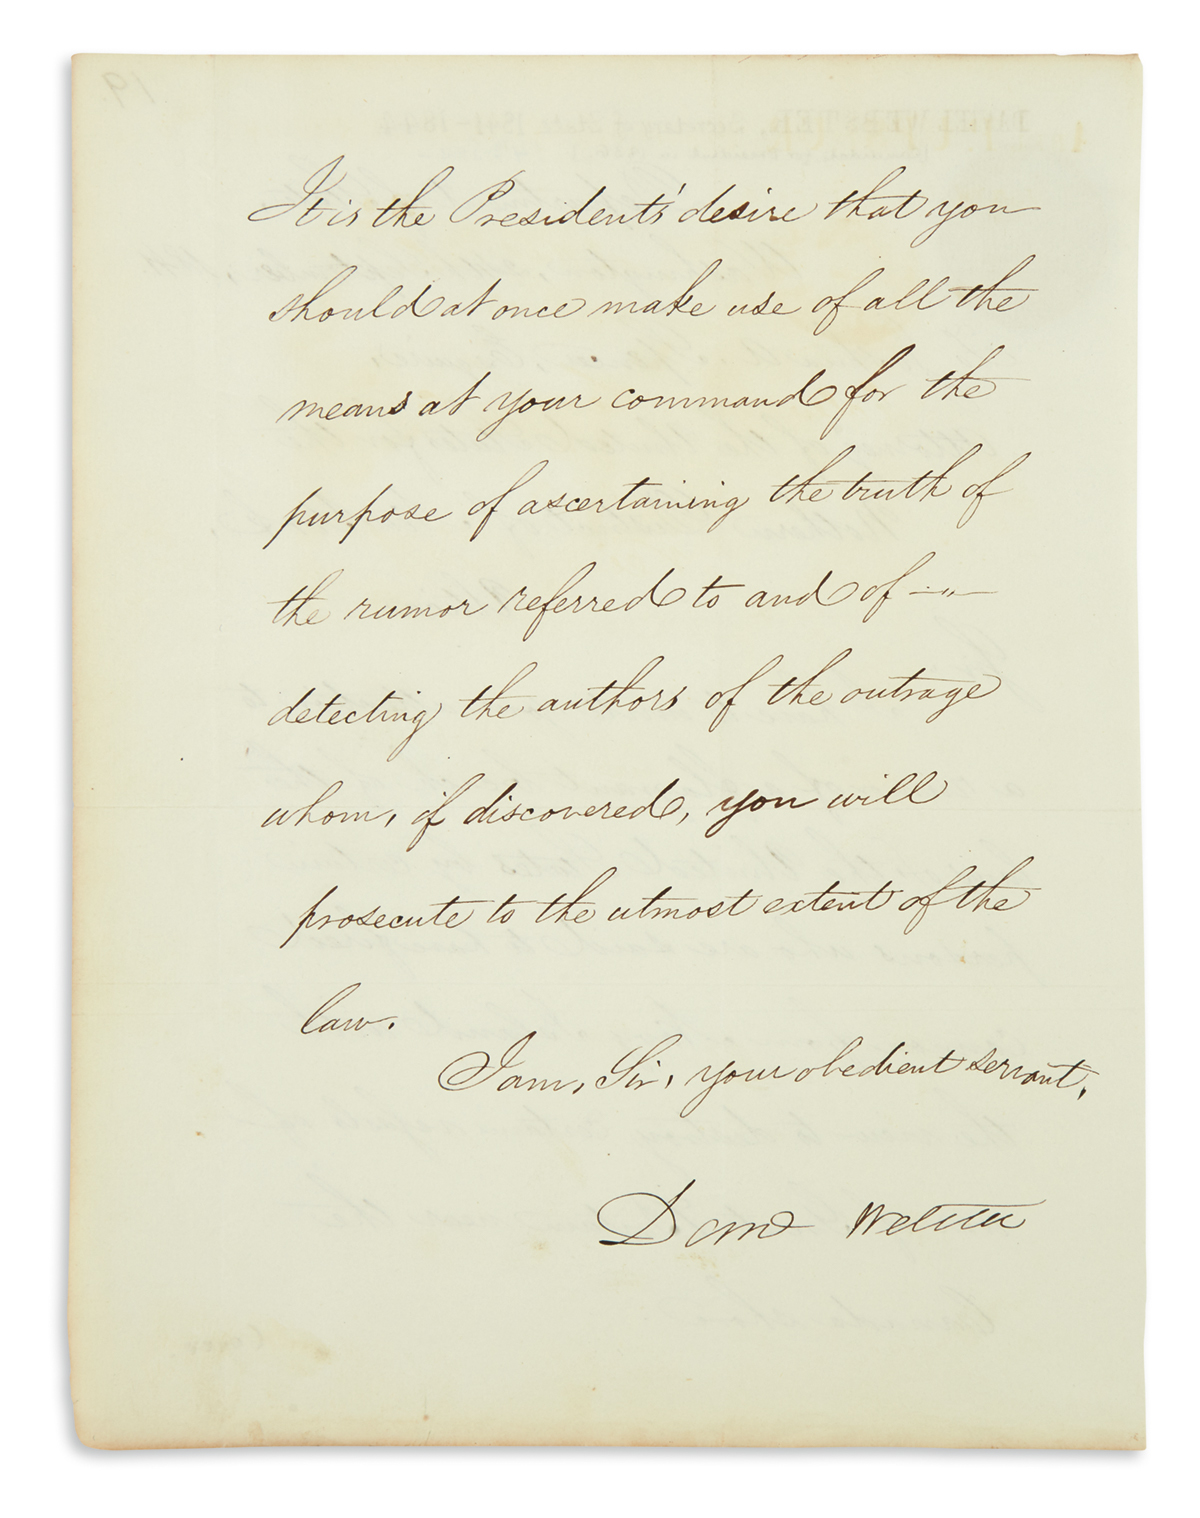 DANIEL-WEBSTER-Letter-Signed-Danl-Webster-as-Secretary-of-St